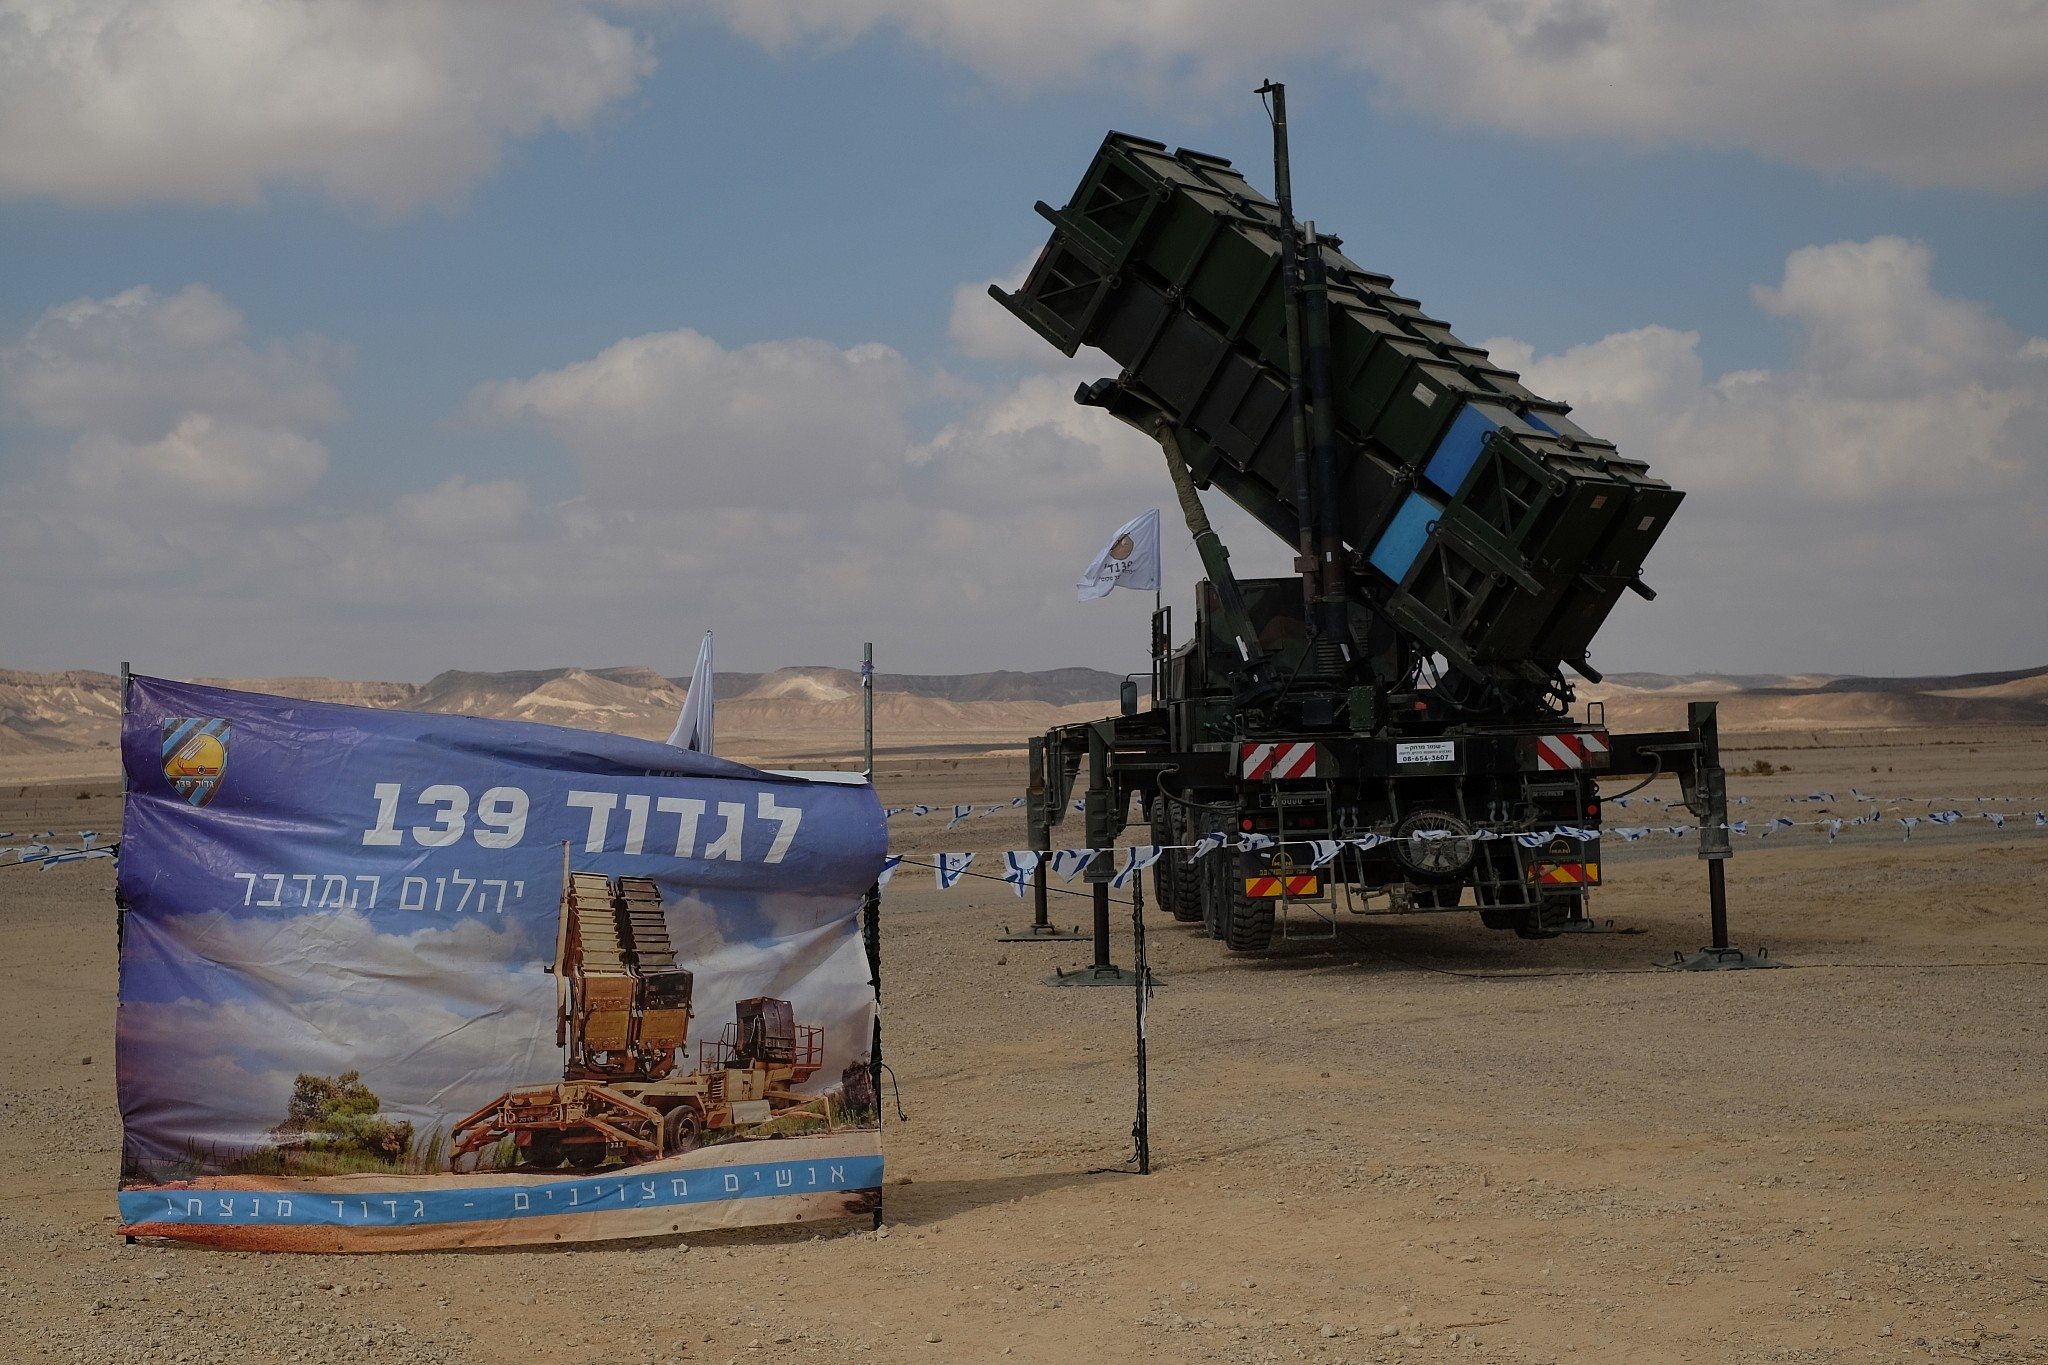 For first time in 100 years, Luftwaffe in Israel's skies in